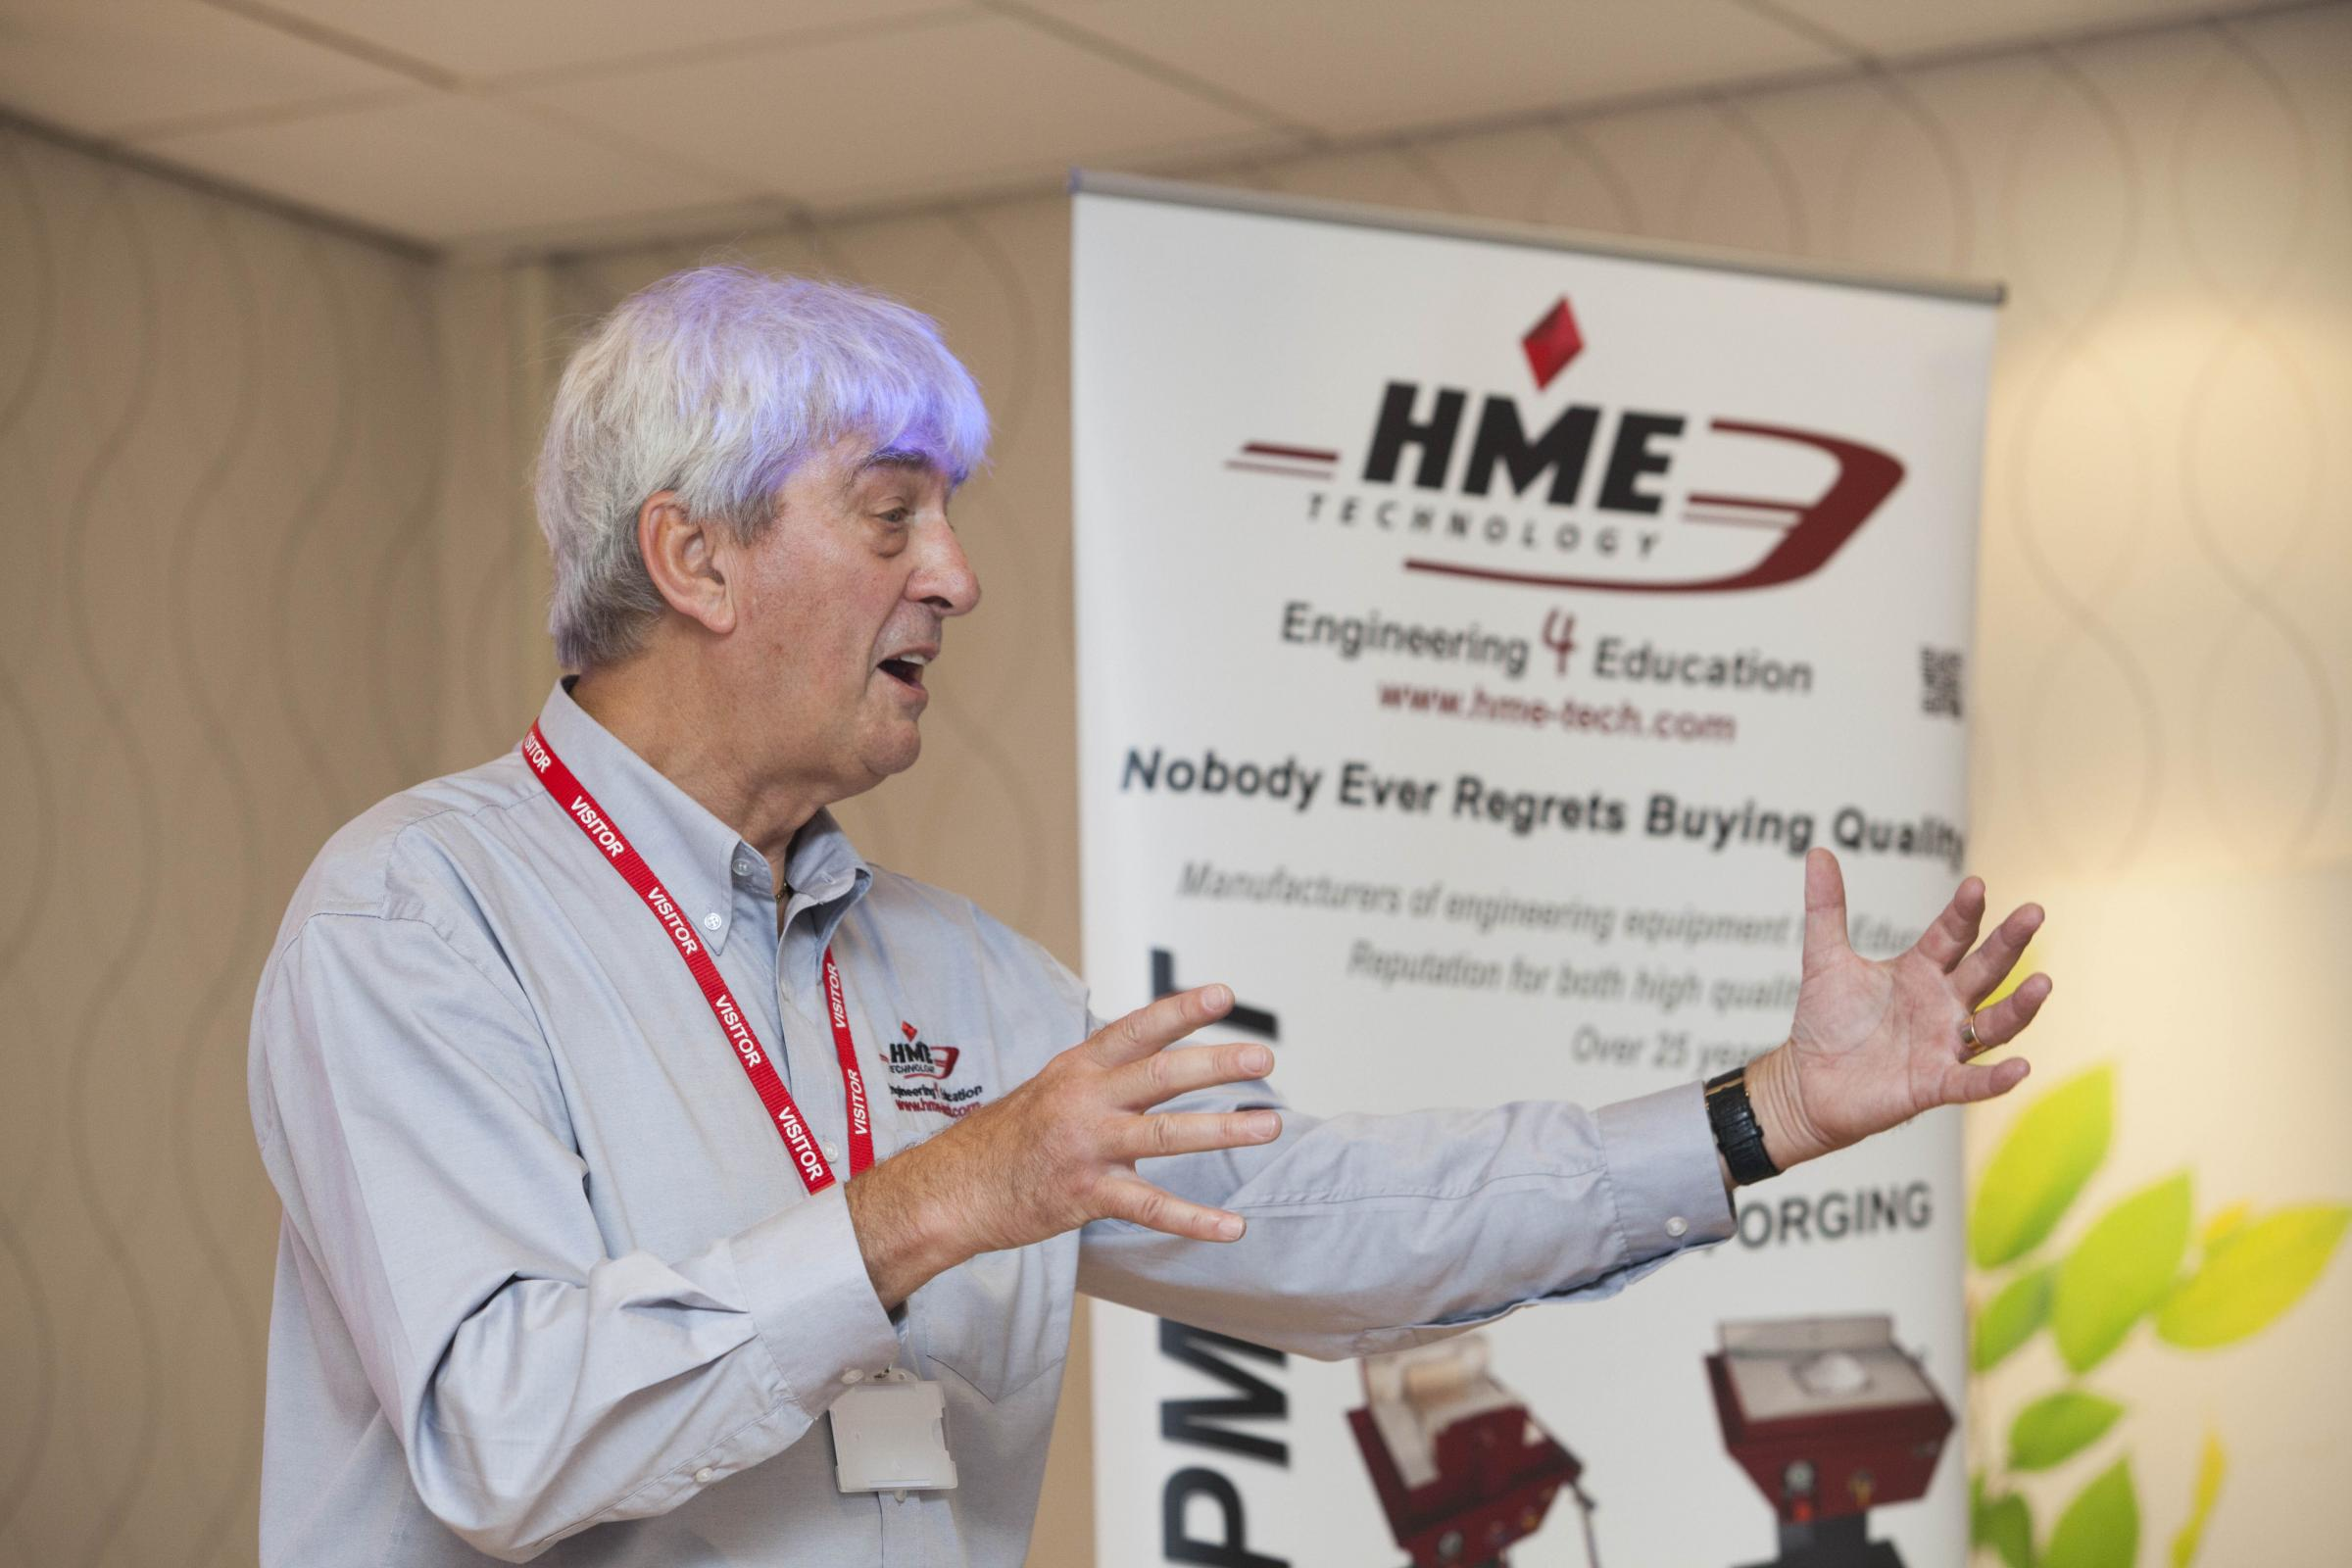 Guest presenter Martyn Hale, chairman of HME Technology, during his talk.